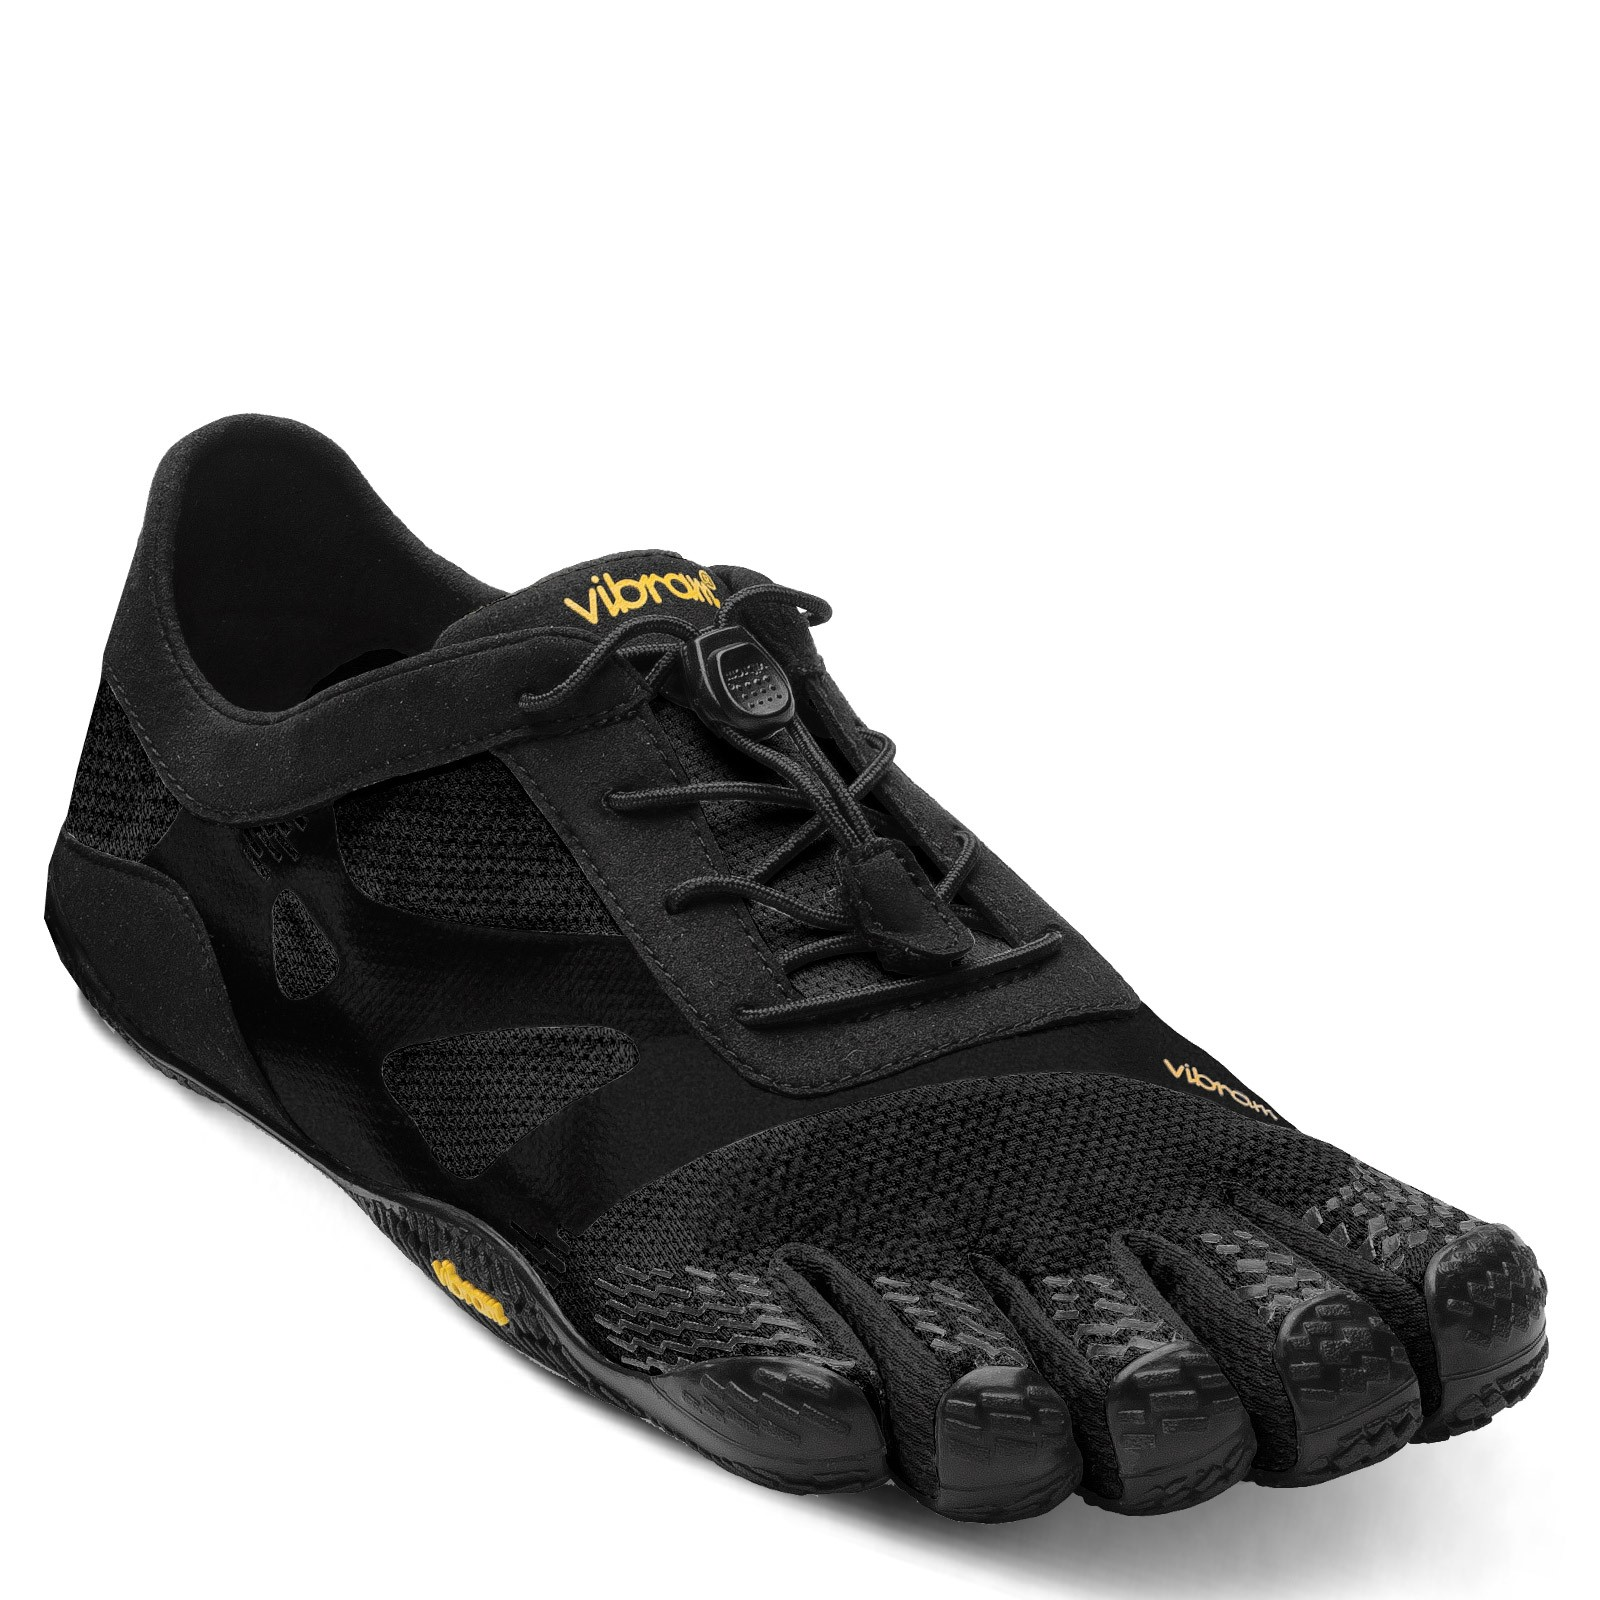 Women's Vibram Five Fingers, KSO Evo Crosstraining Shoes